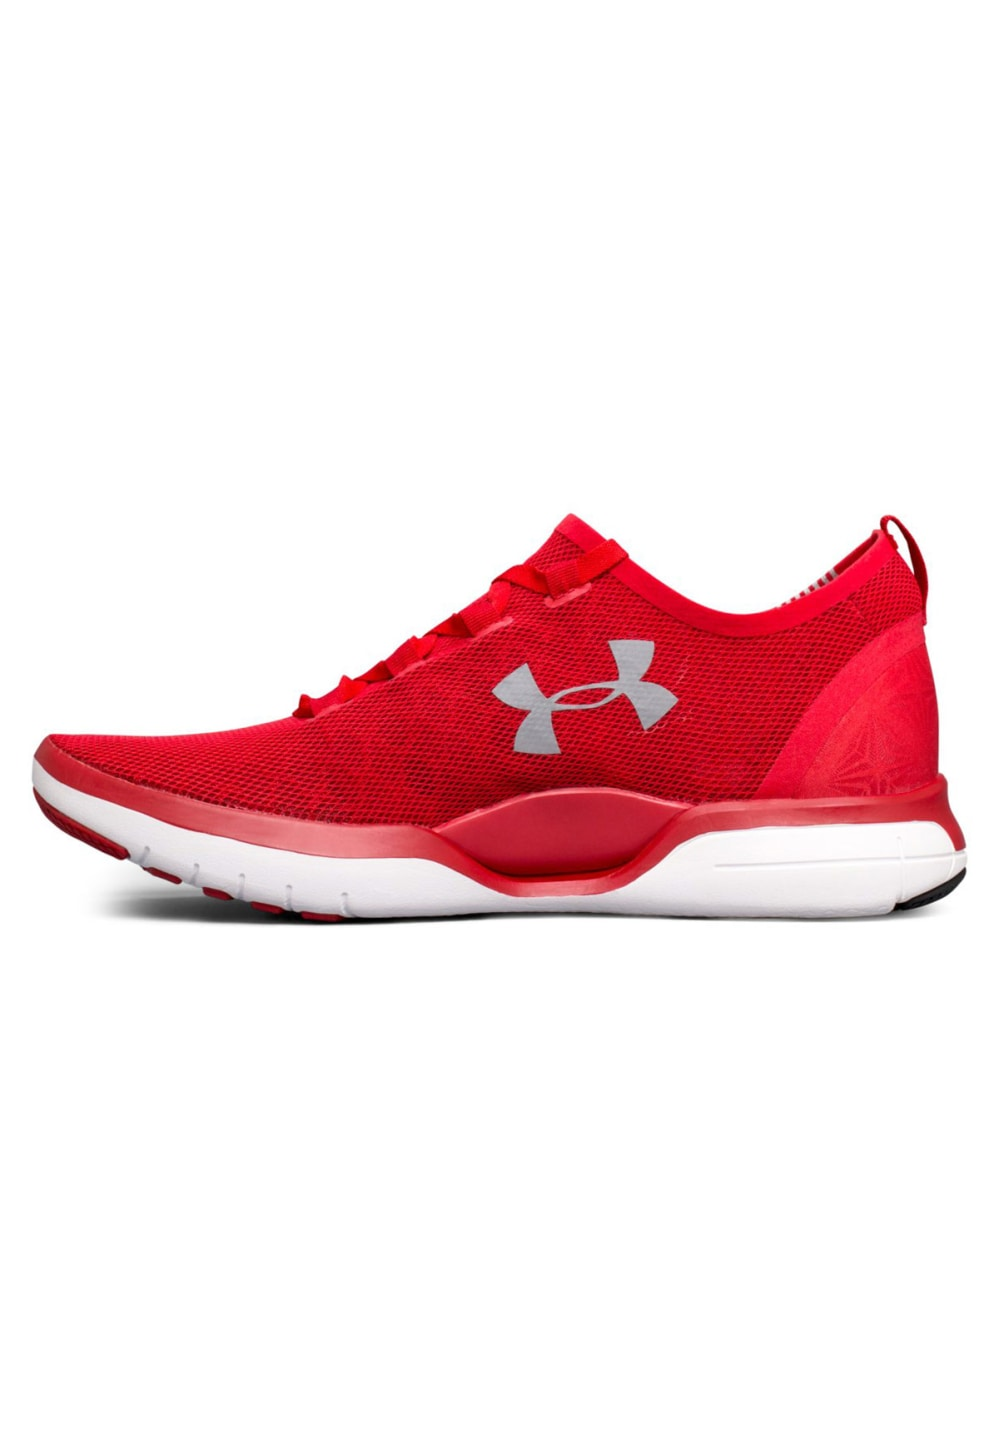 under armour shoes mens red Online